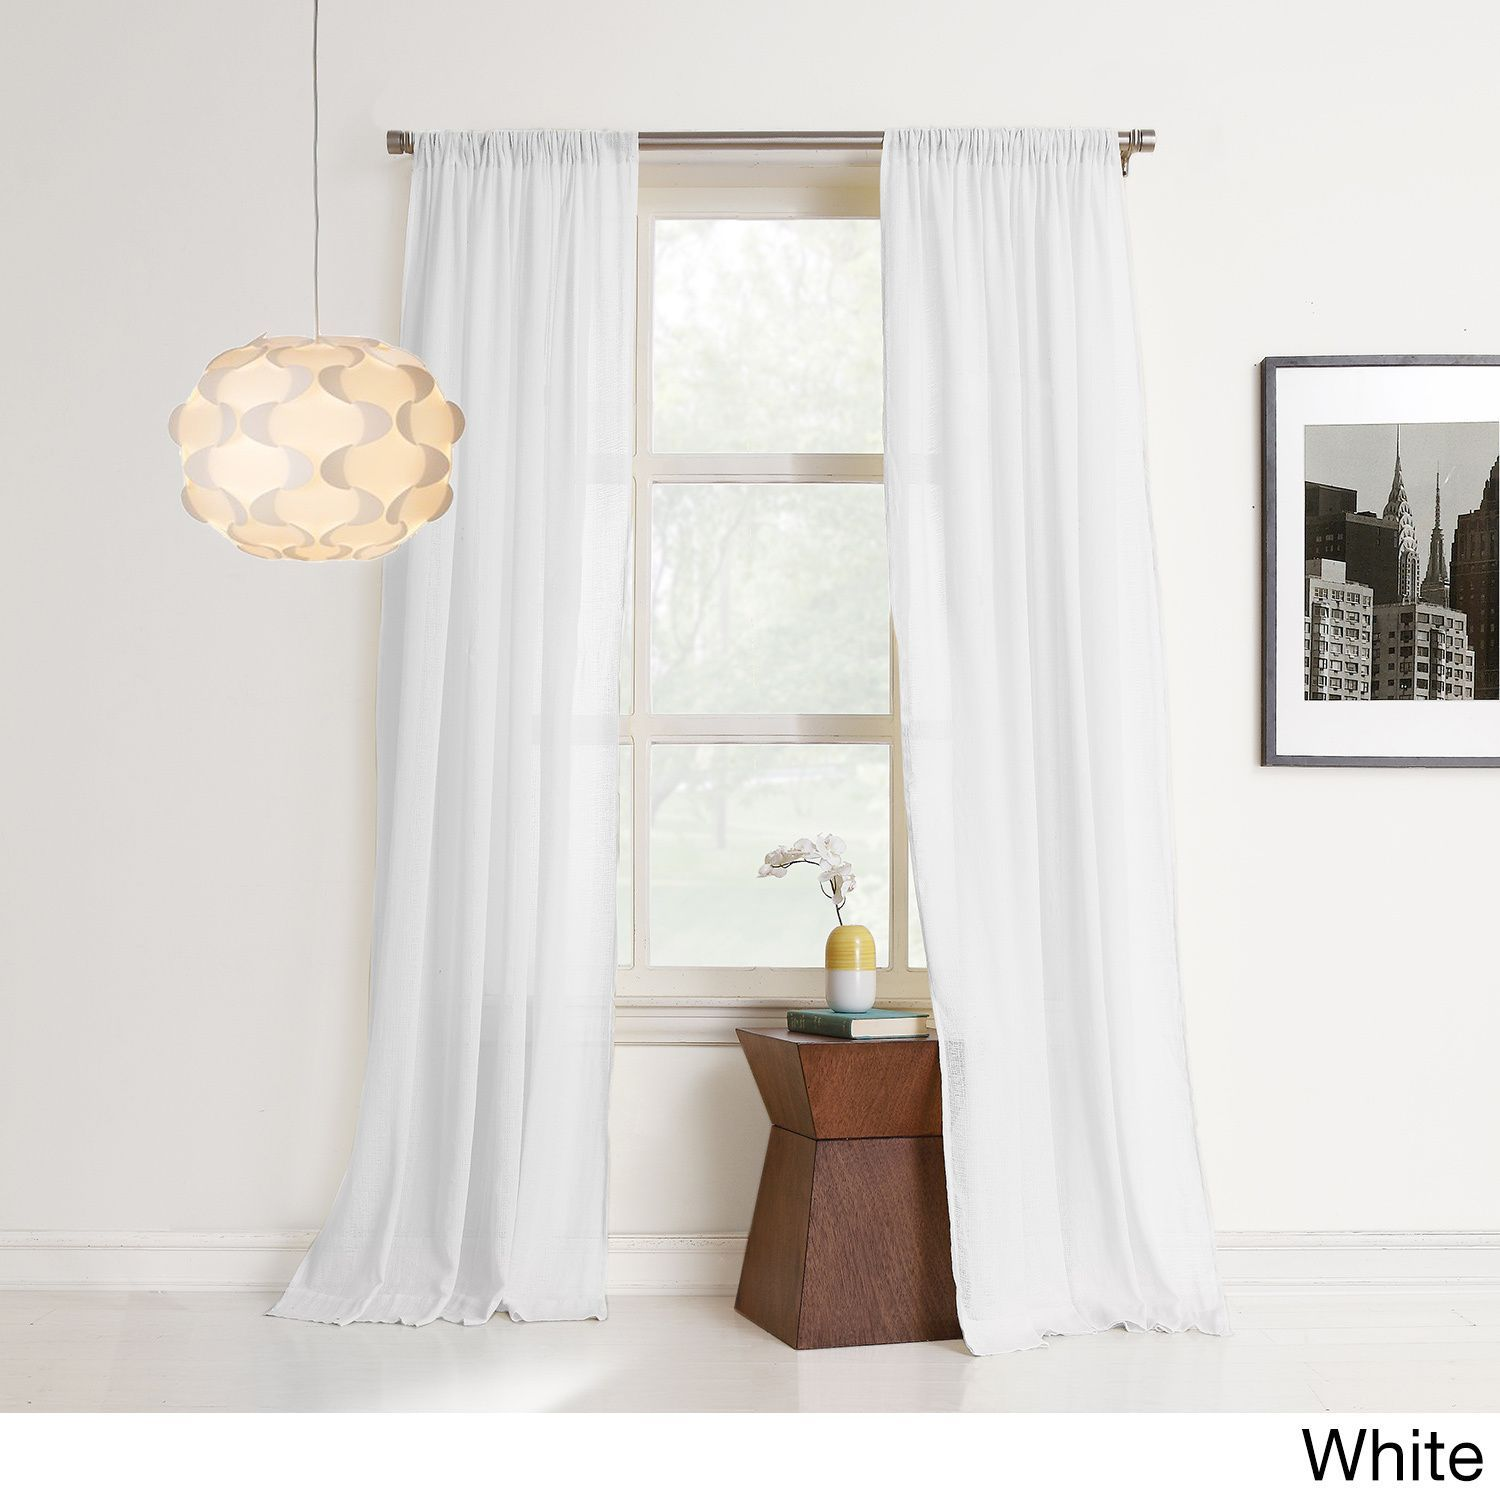 No 918 Hendricks Sheer Cotton Gauze Window Curtain White 95 Inch